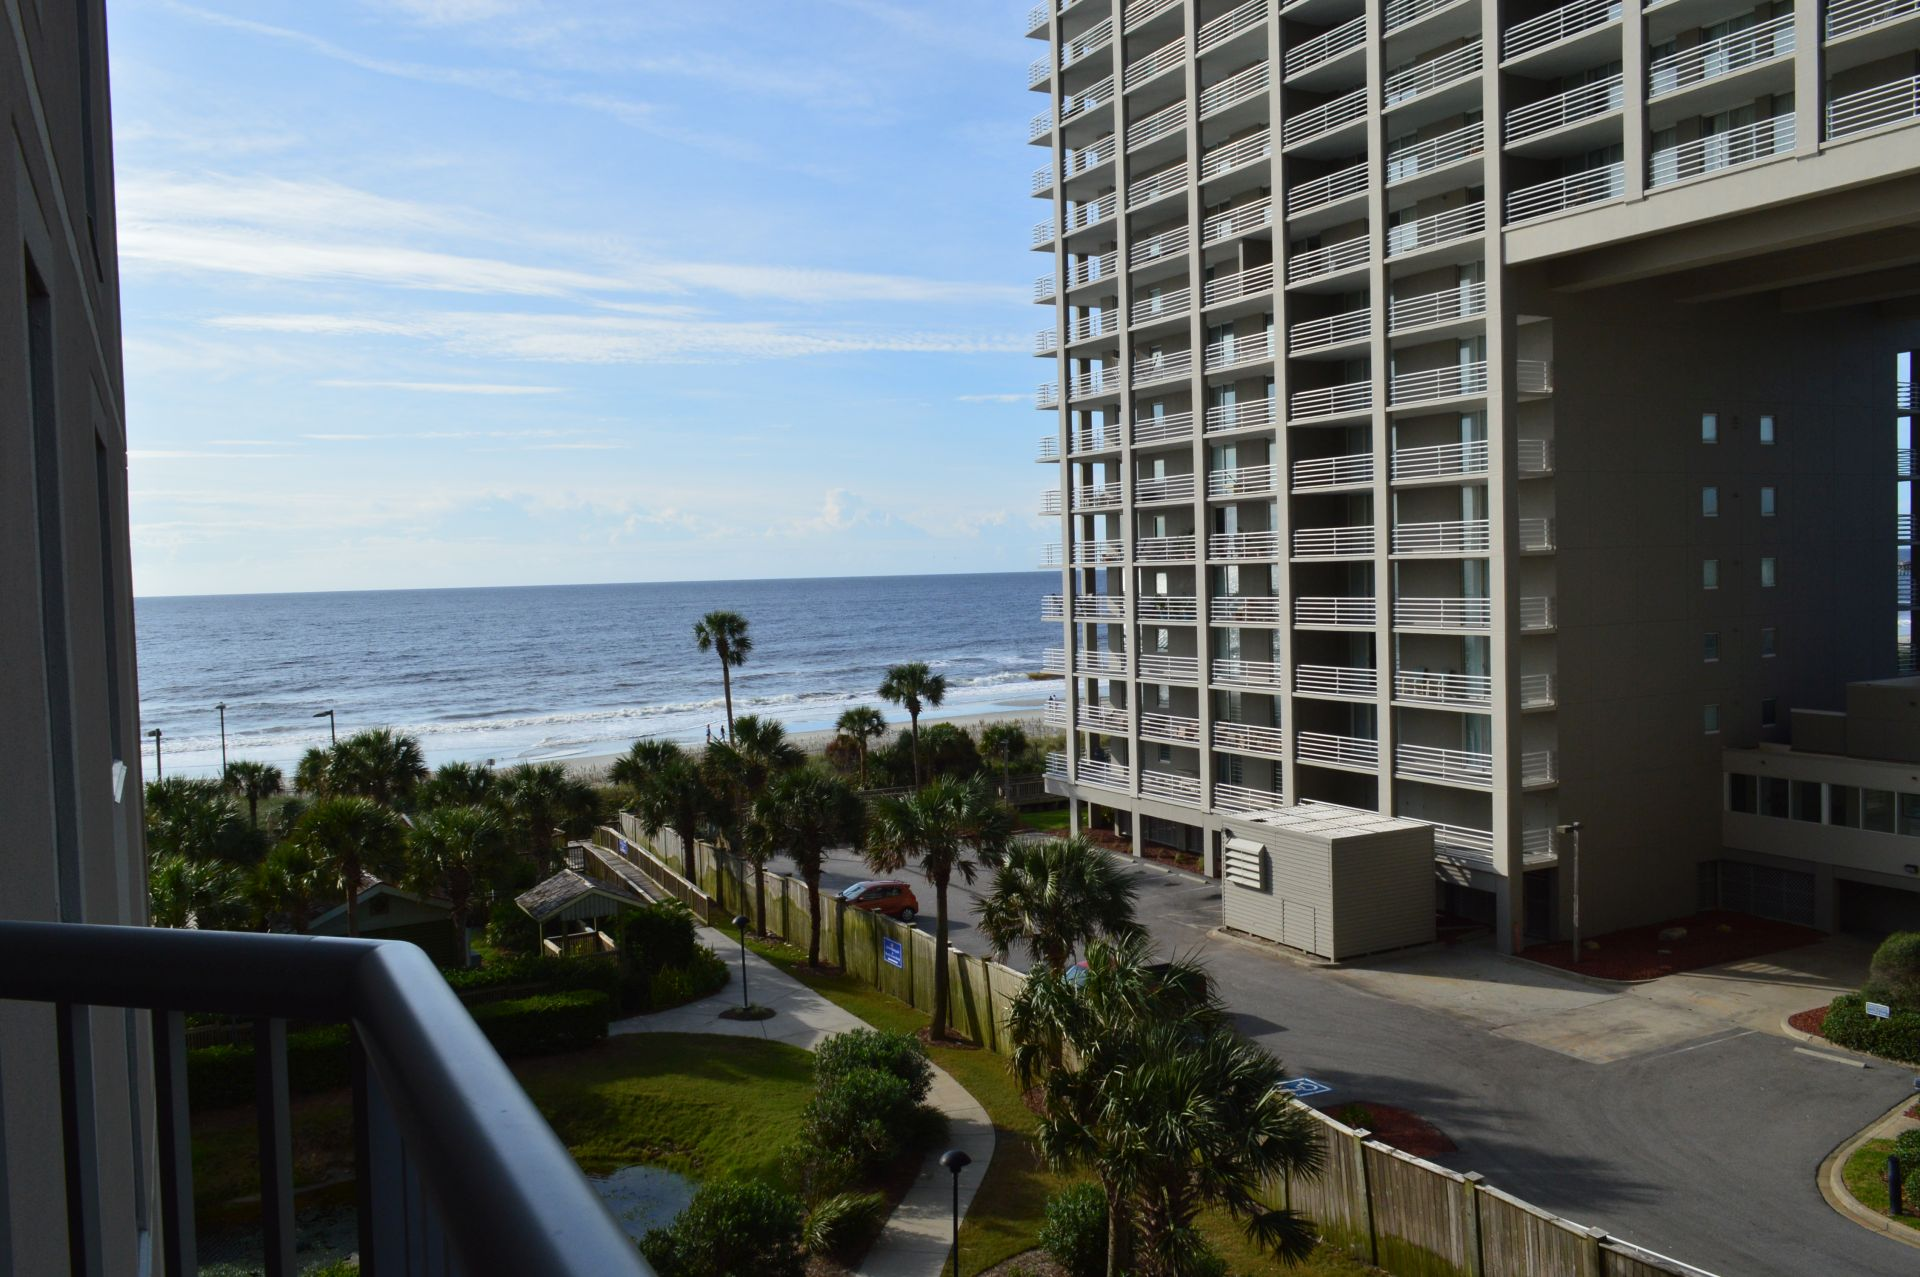 Hilton Myrtle Beach view from balcony